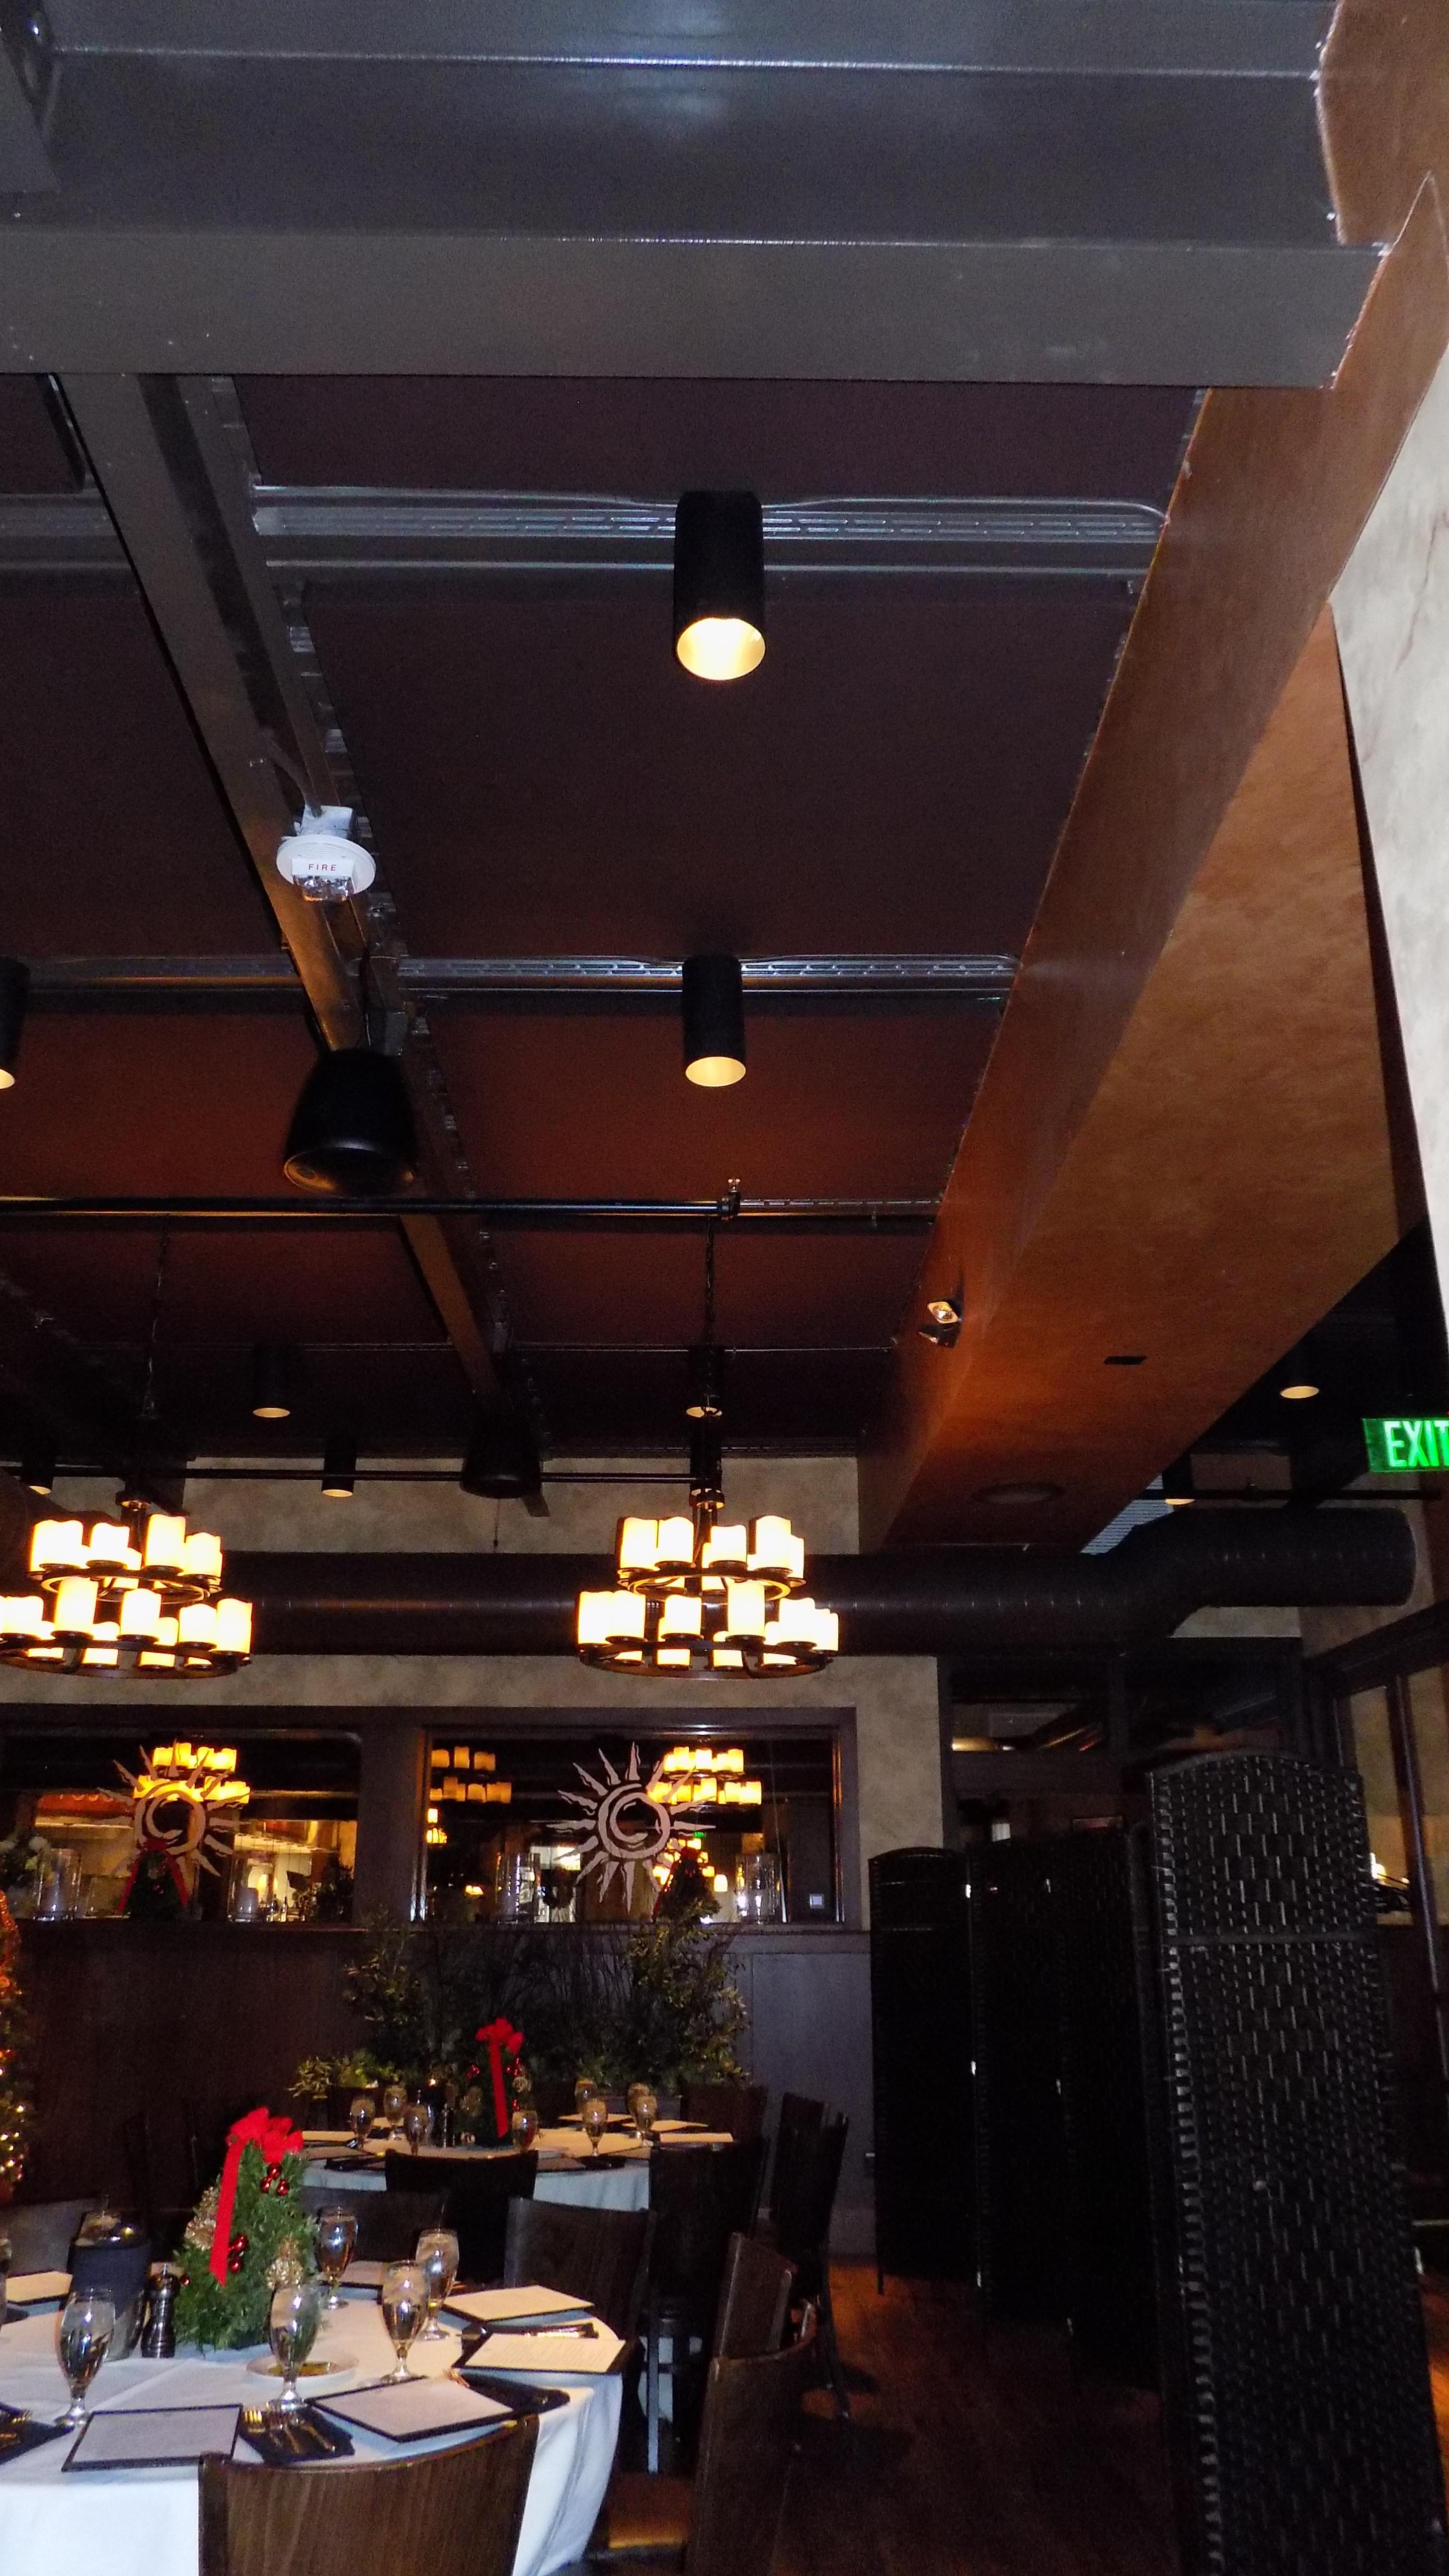 Soundproofing Reduces Reverberation Time In Restaurant